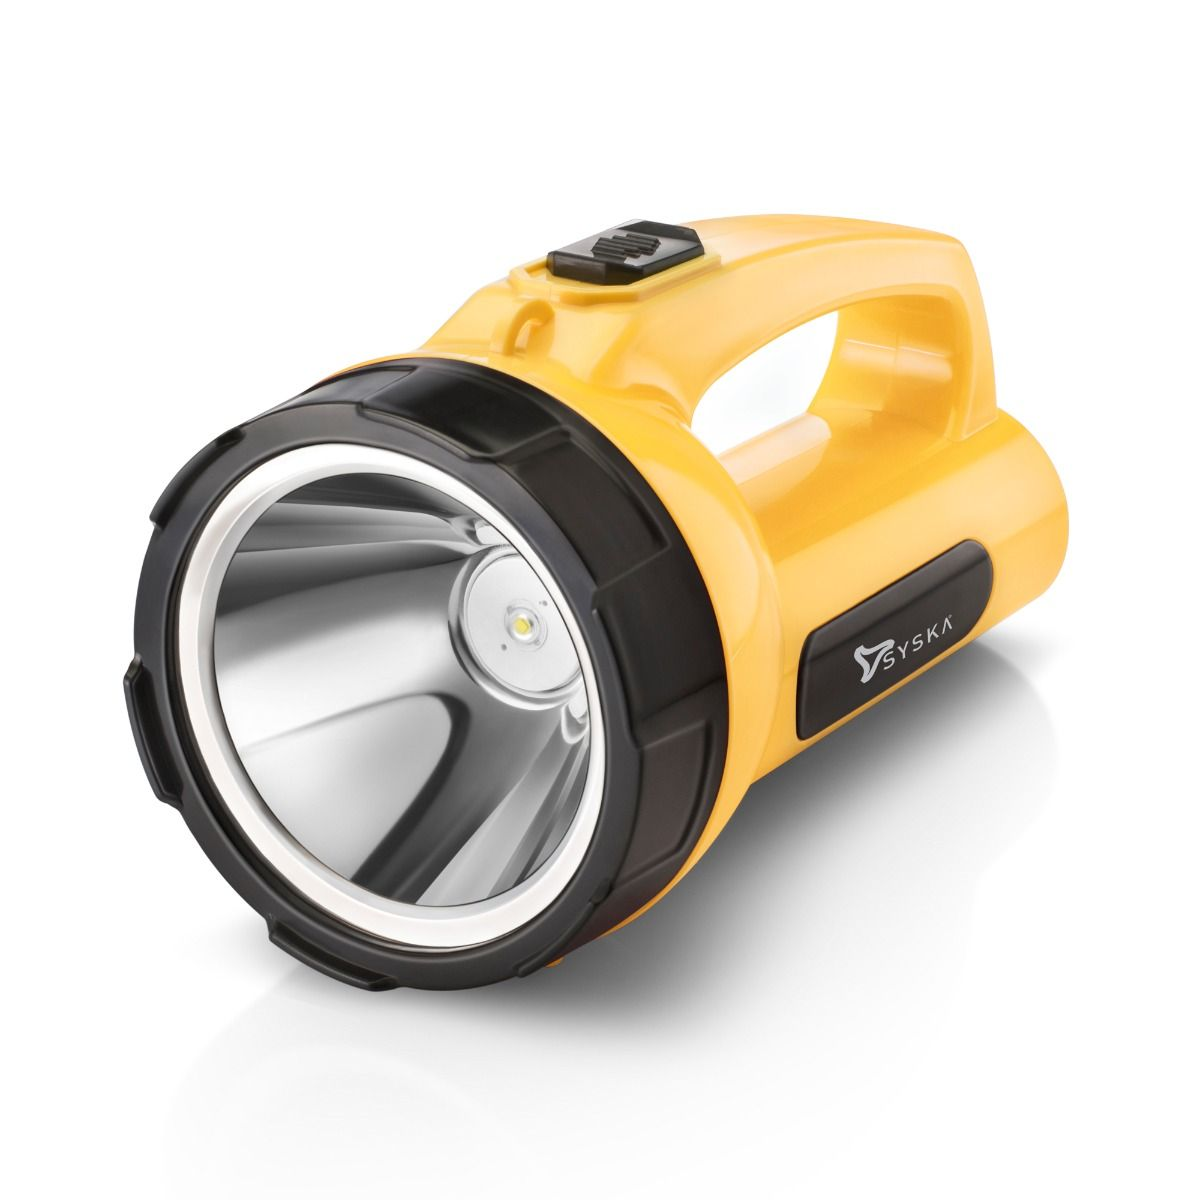 Syska 5W Starlet Torch S528L (Yellow)